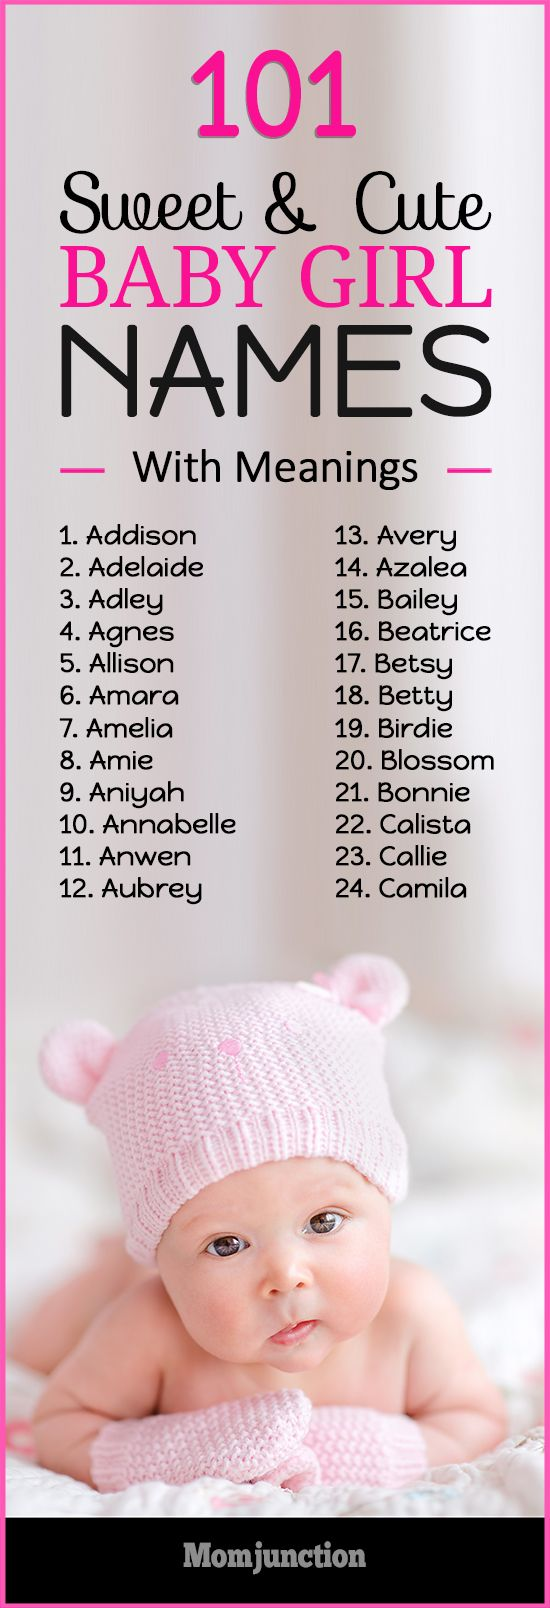 101 #Sweet & #Cute #Baby #Girl #Names With Meanings : If you are looking for such name which suits your daughter now and forever, MomJunction has a list of 101 sweet and cute girl names. Trendy, traditional, celebrity favorites — we've got them all for you in our list below.